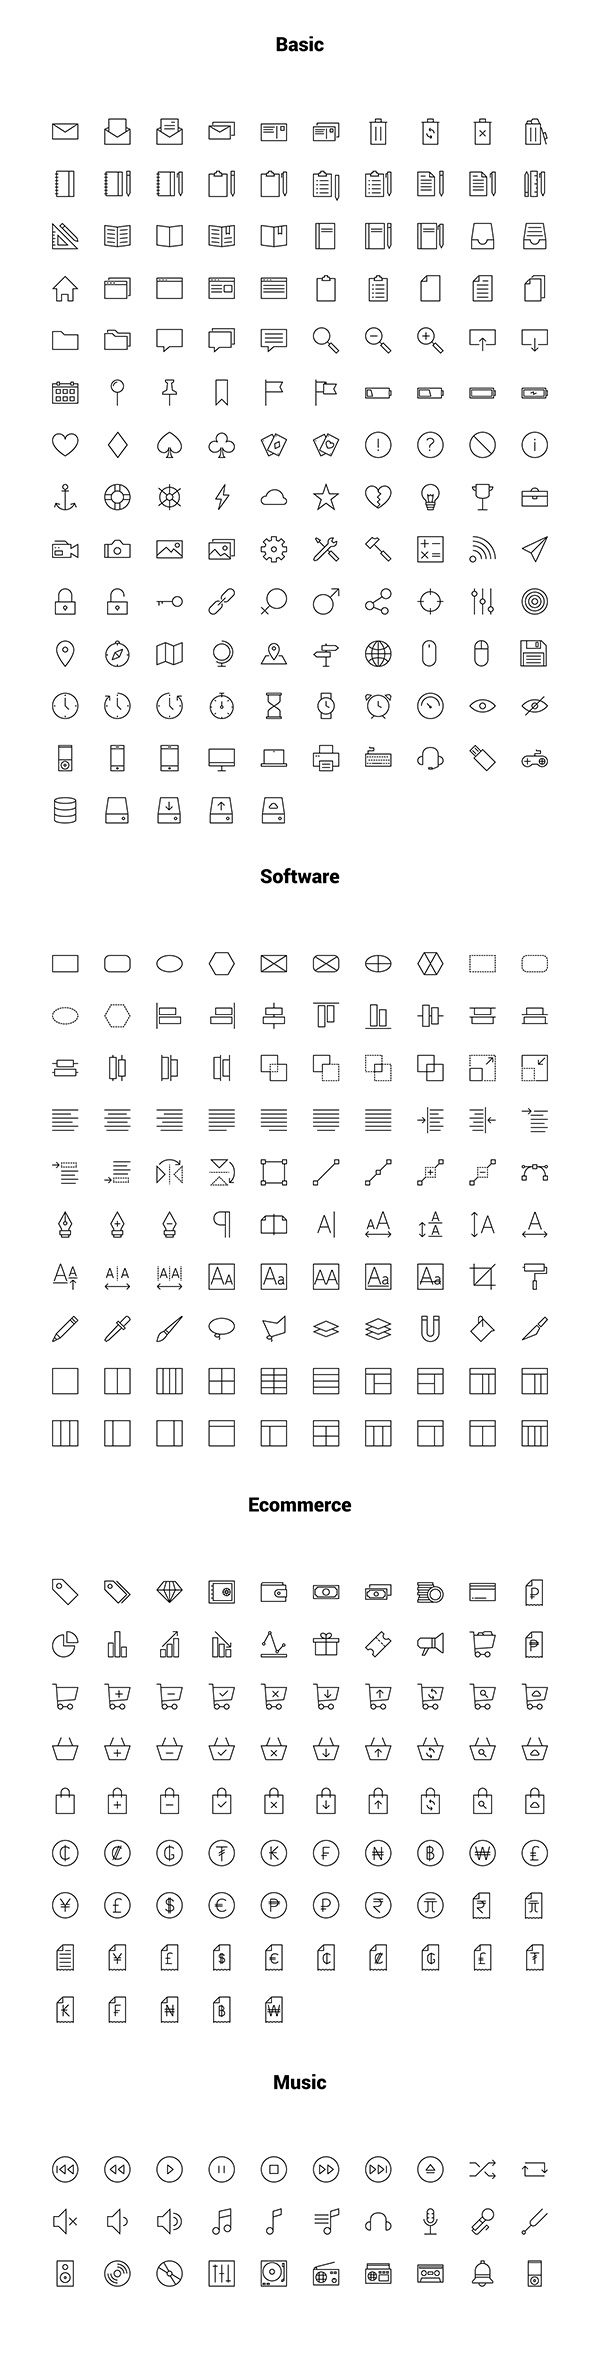 Linea: Free Outline Iconset | GraphicBurger